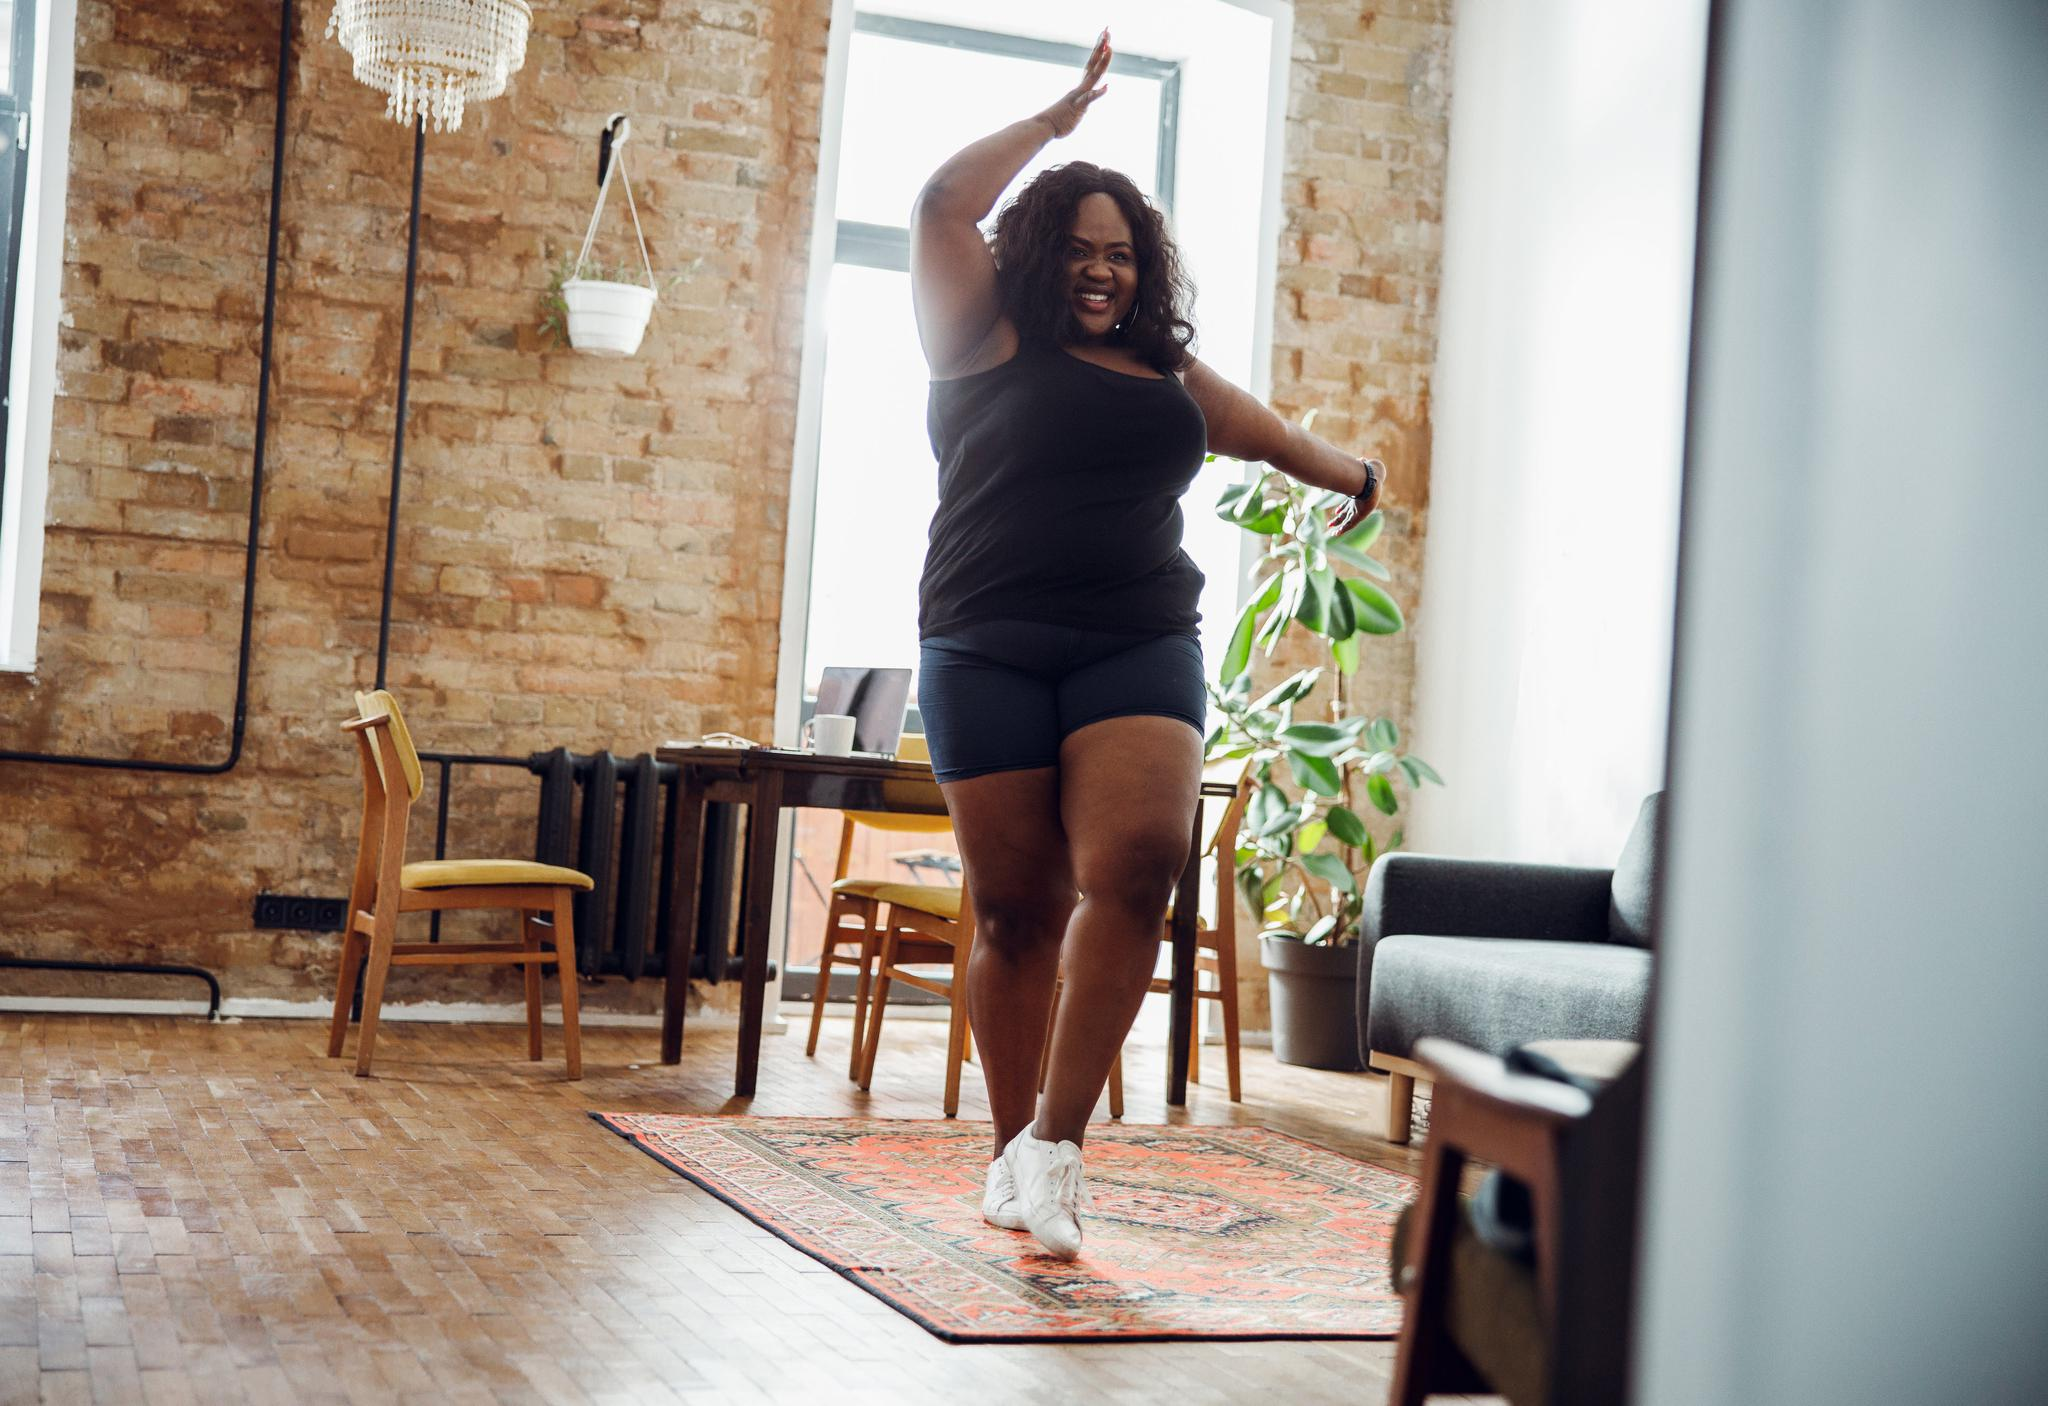 <p>Dance it out</p>Getty Images/iStockphoto